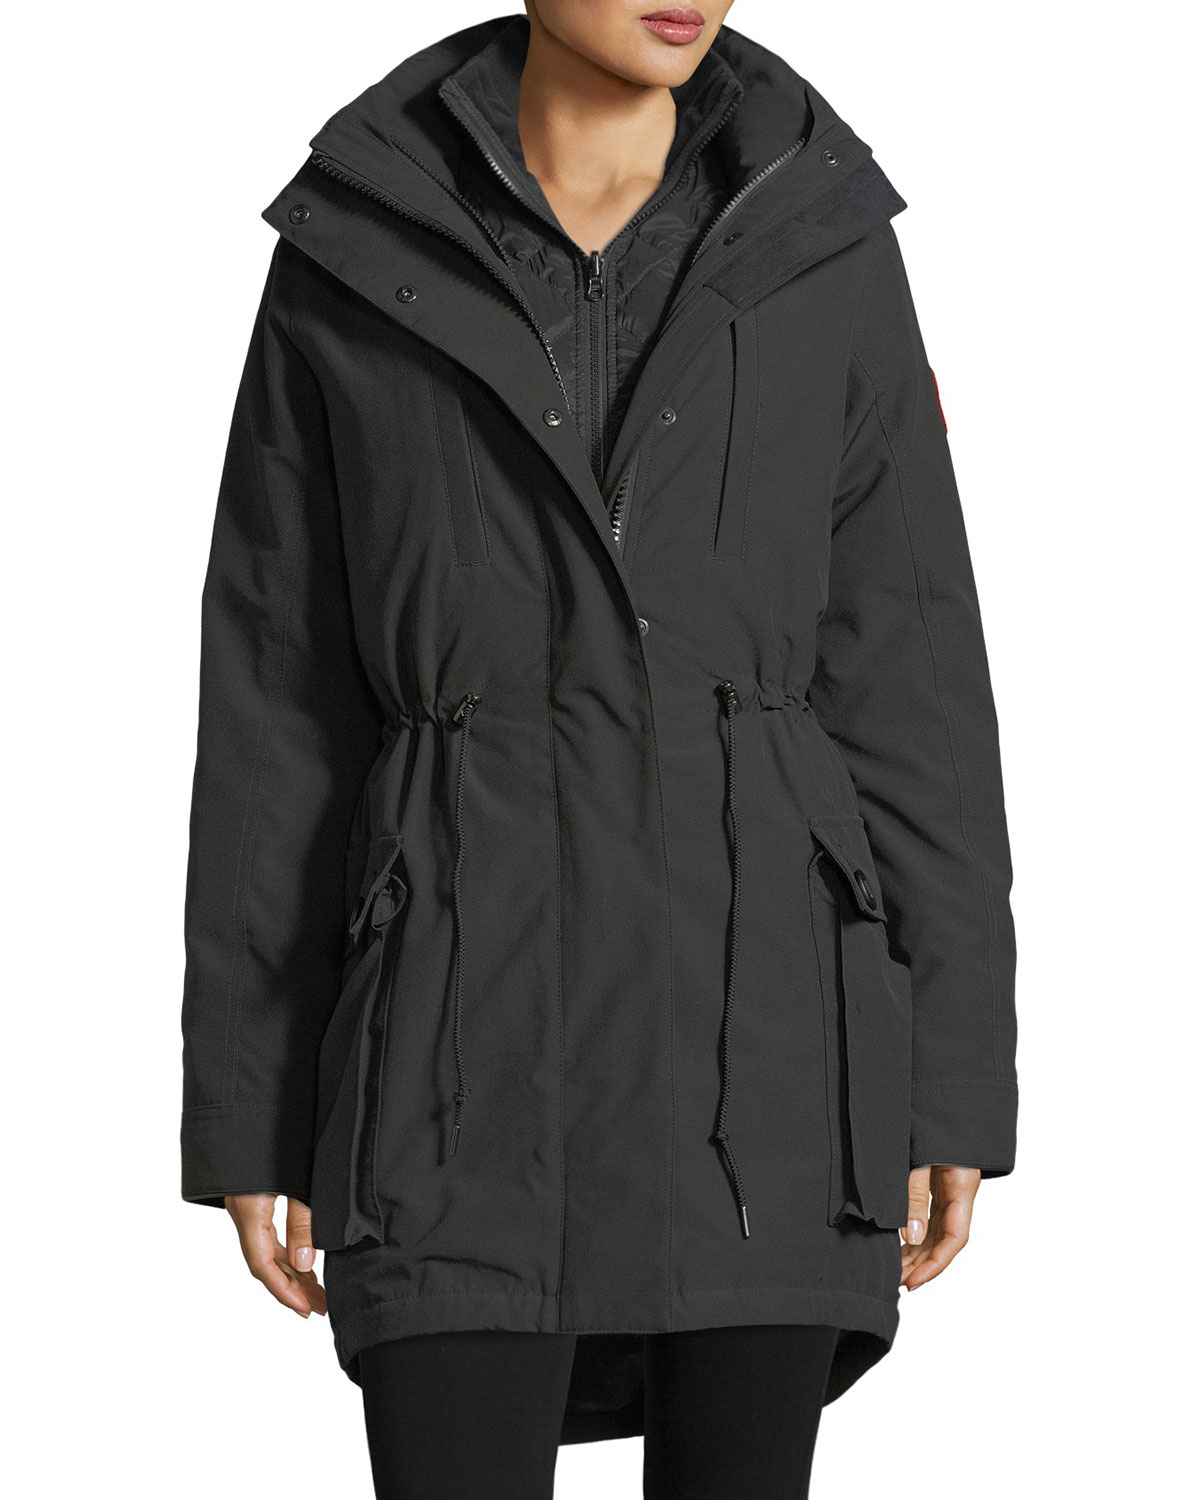 Canada Goose PERLEY 3-IN-1 PARKA JACKET WITH VEST